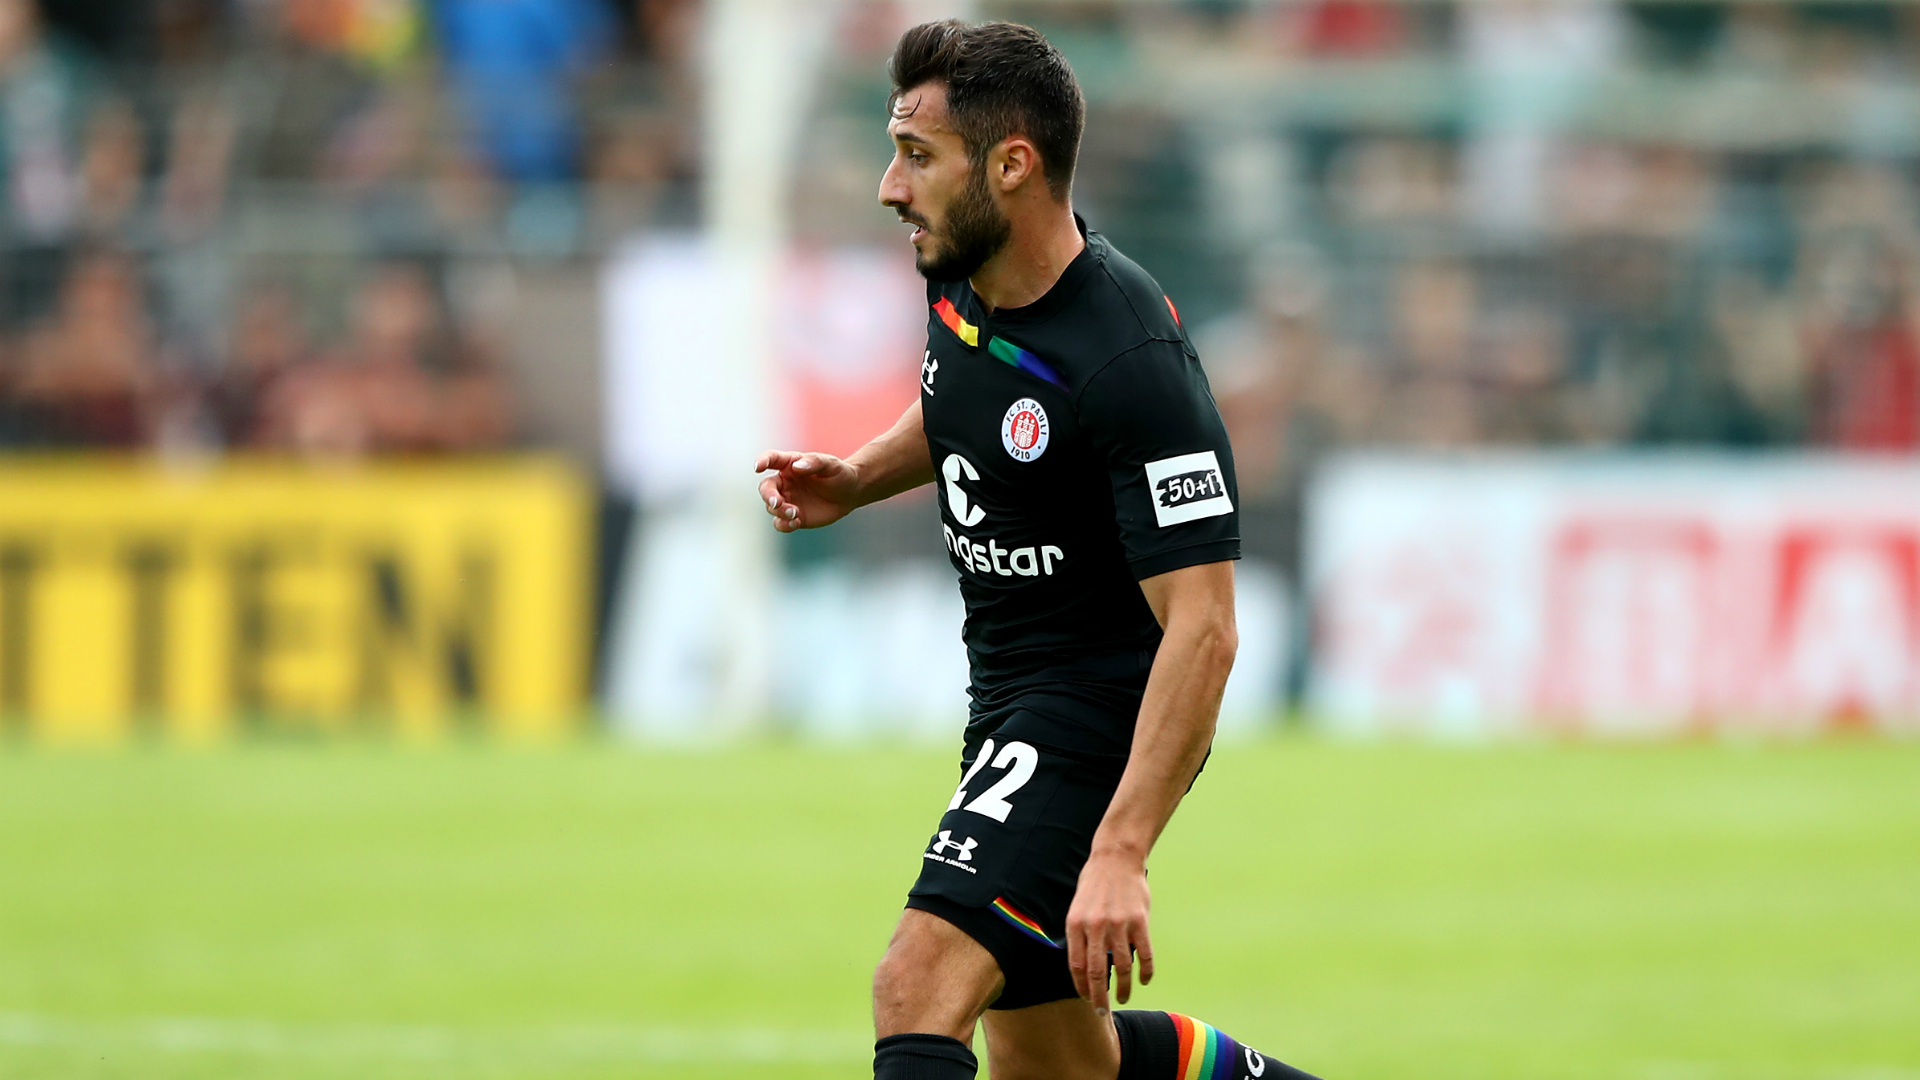 St Pauli release Cenk Sahin after Instagram post supporting Turkey's military action in Syria